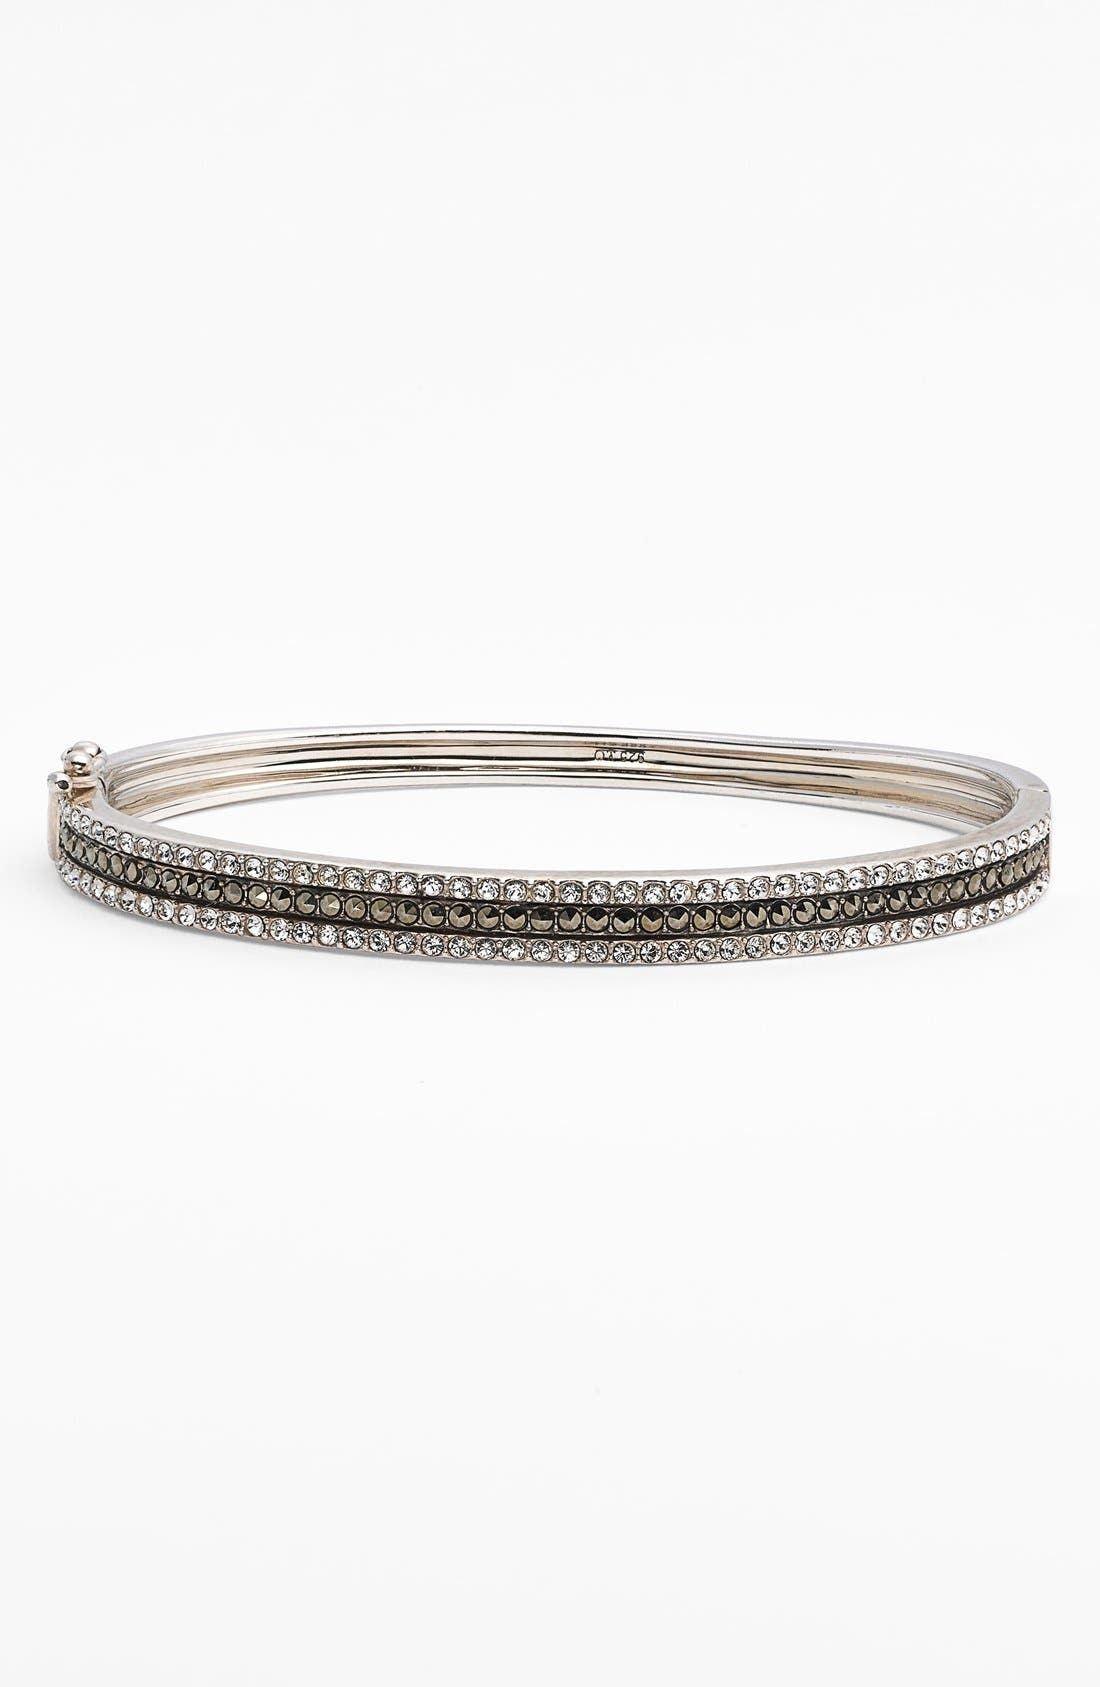 Main Image - Judith Jack Triple Row Bangle